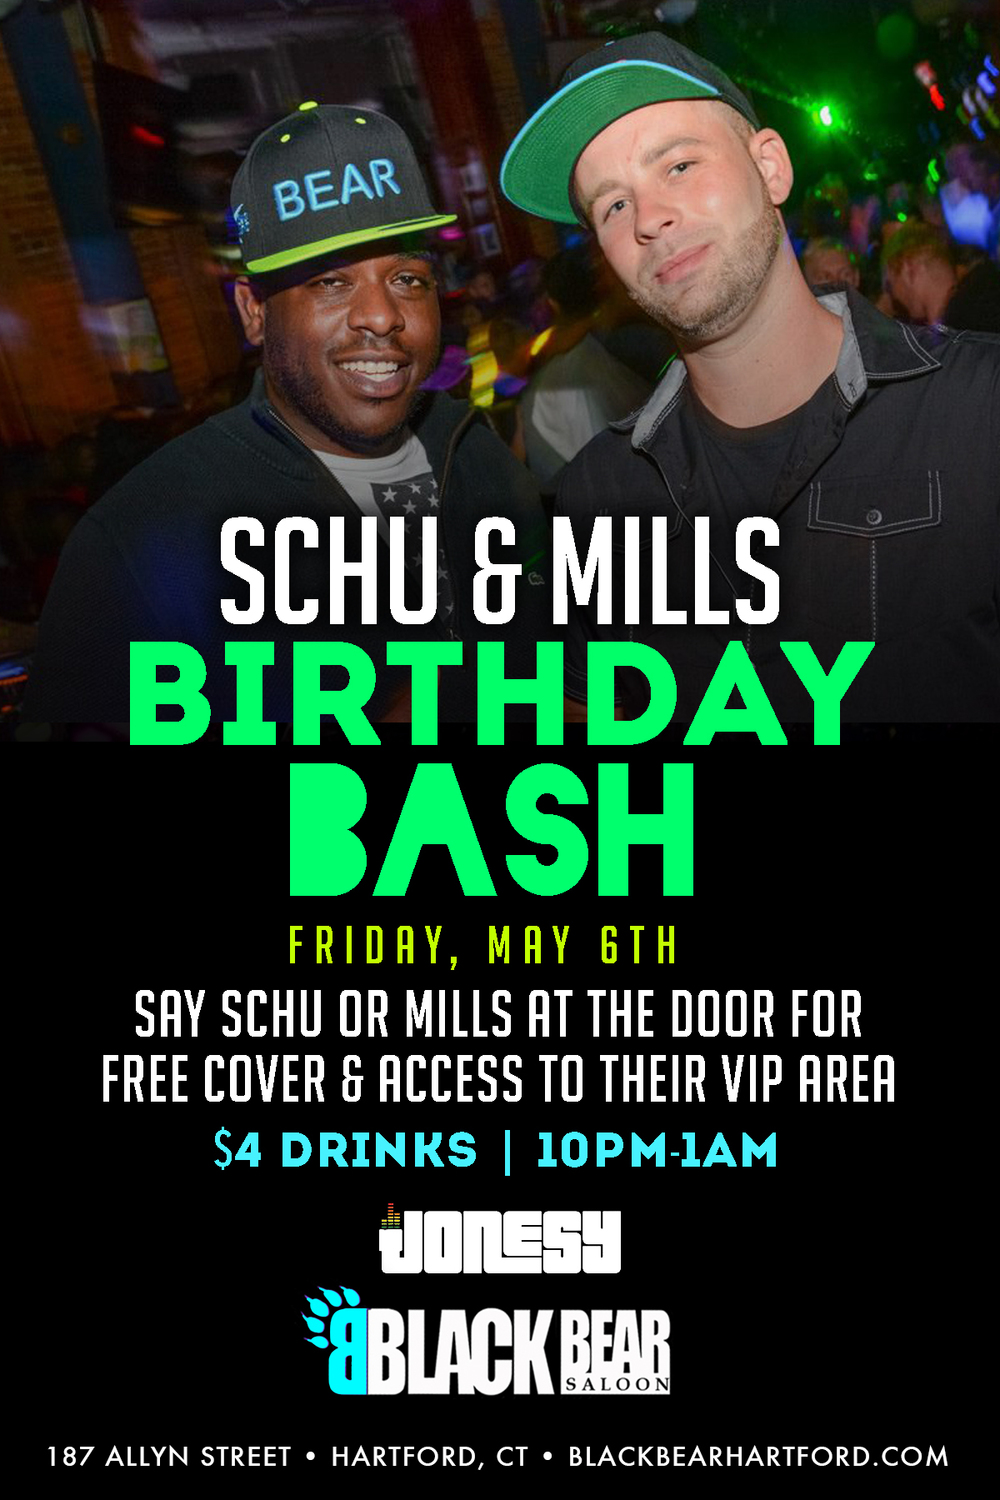 FRIDAY, MAY 6TH JOIN US AT BLACK BEAR IN HARTFORD, CT FOR A GIANT BIRTHDAY BASH FOR MY BROTHERS SCHU & MILLS!  DROP EITHER OF THEIR NAMES AT THE DOOR FOR FREE COVER AND ACCESS TO THEIR VIP AREA.  $4 DRINKS 10PM-1AM AND MUSIC BY YOURS TRULY ALL NIGHT LONG!